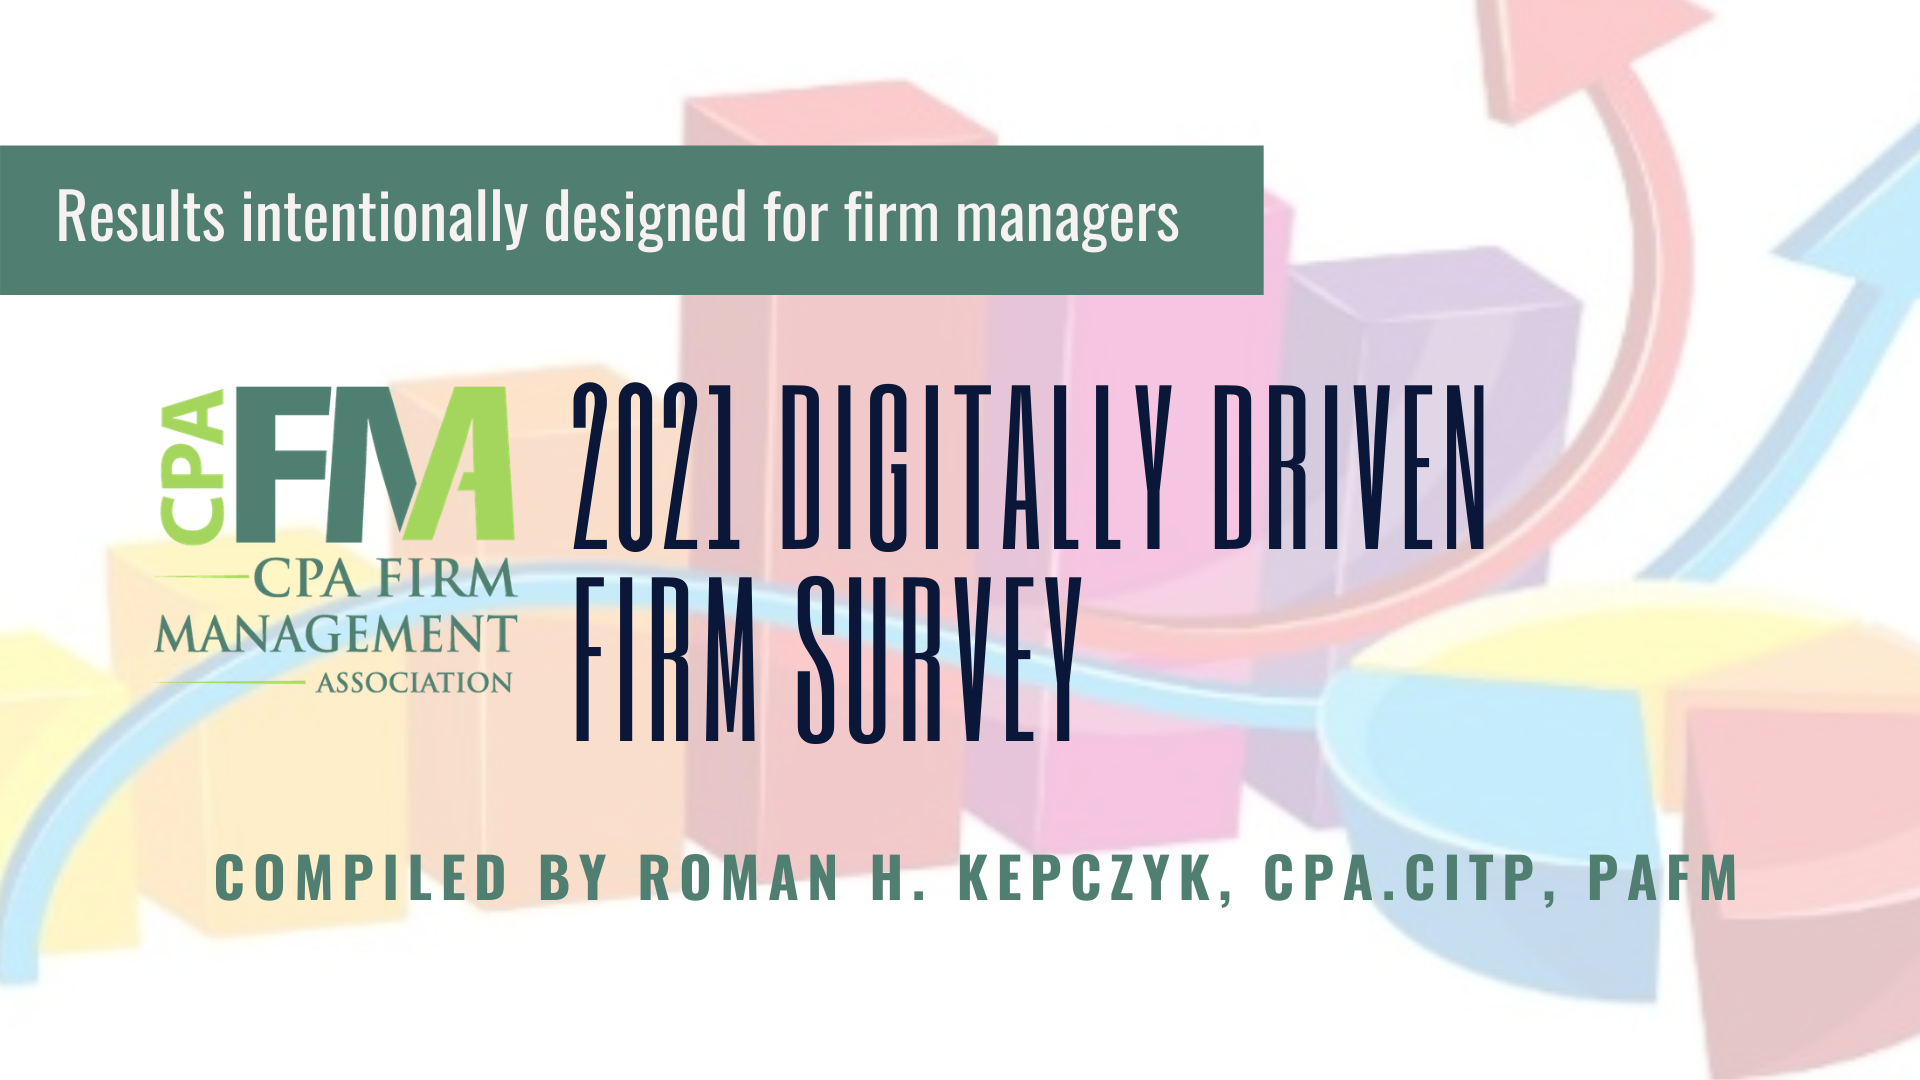 2021 Digitally Driven (Paperless) Benchmark Survey Results